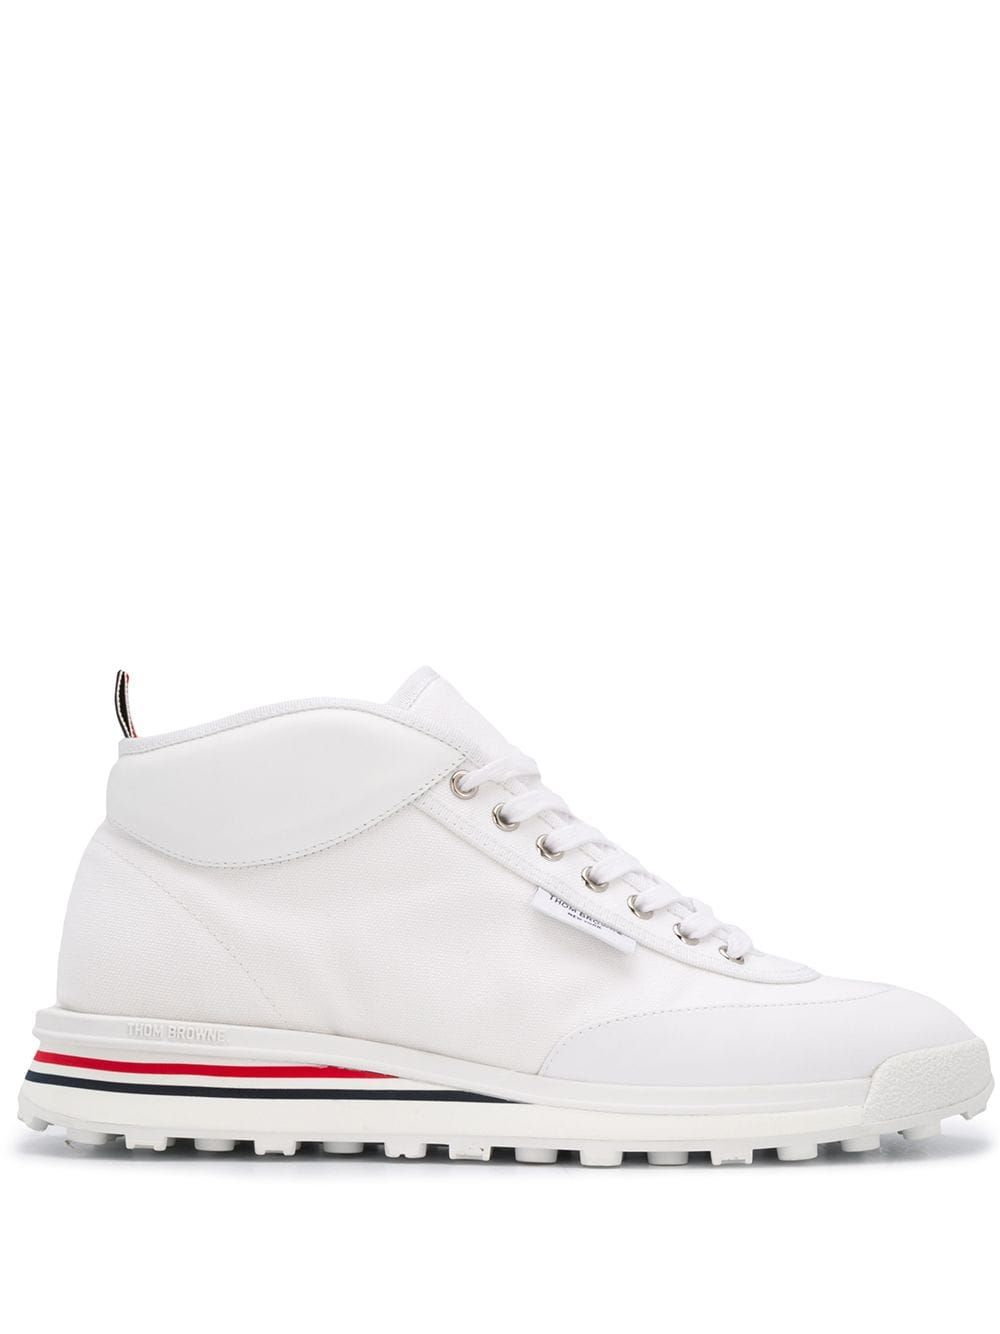 Thom Browne Shoes THOM BROWNE MEN'S MFD211A05390100 WHITE COTTON HI TOP SNEAKERS